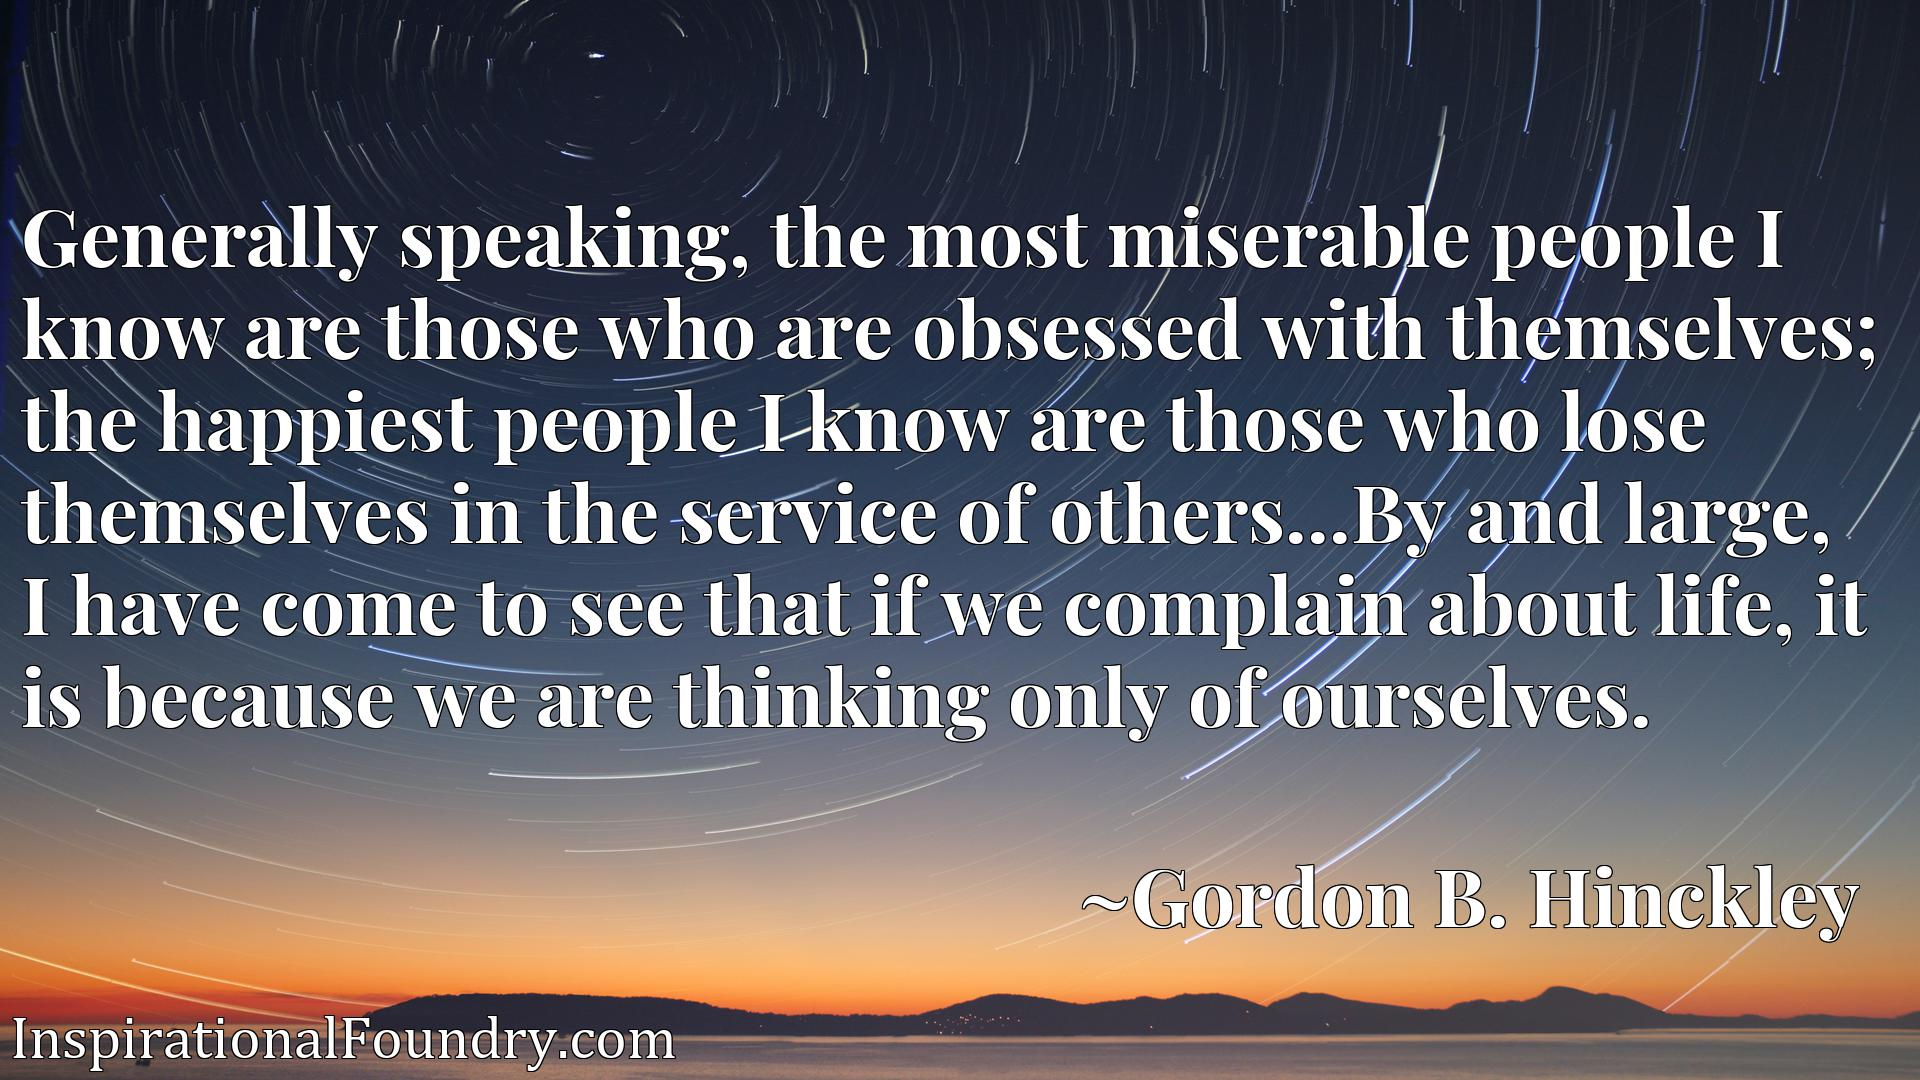 Generally speaking, the most miserable people I know are those who are obsessed with themselves; the happiest people I know are those who lose themselves in the service of others...By and large, I have come to see that if we complain about life, it is because we are thinking only of ourselves.